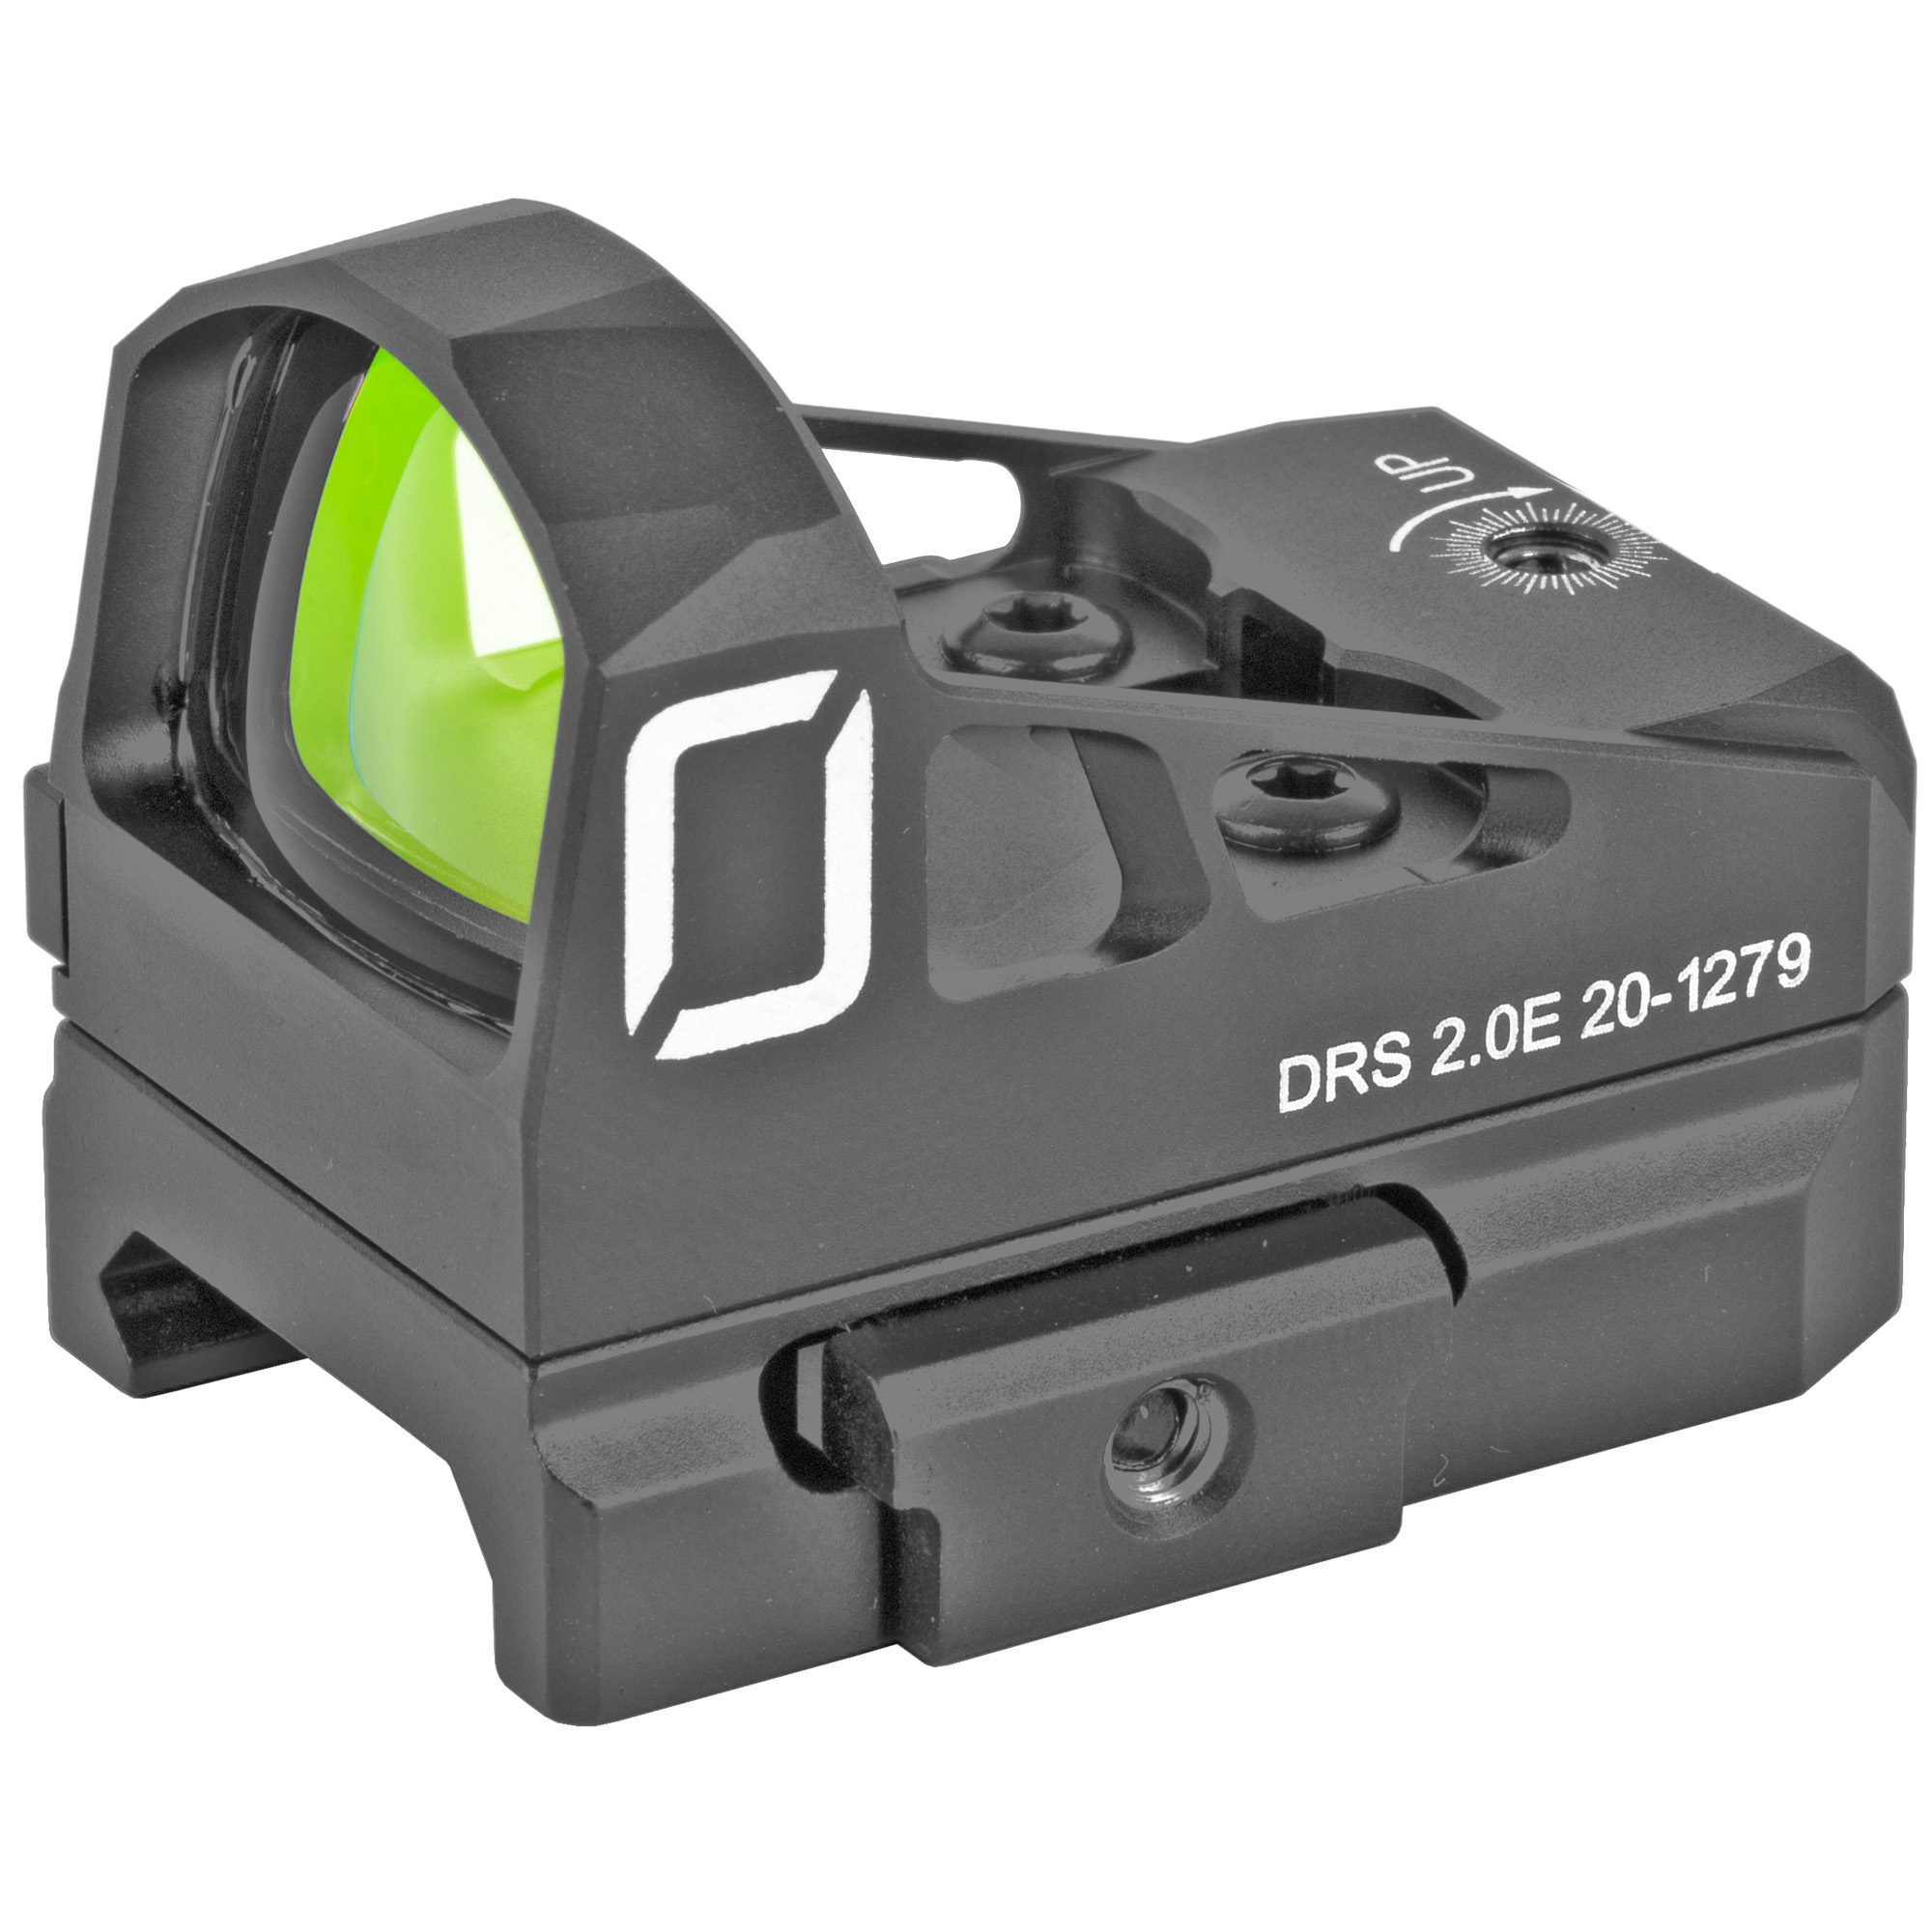 Us Optics Drs 2.0 Reflex Sght Enhncd